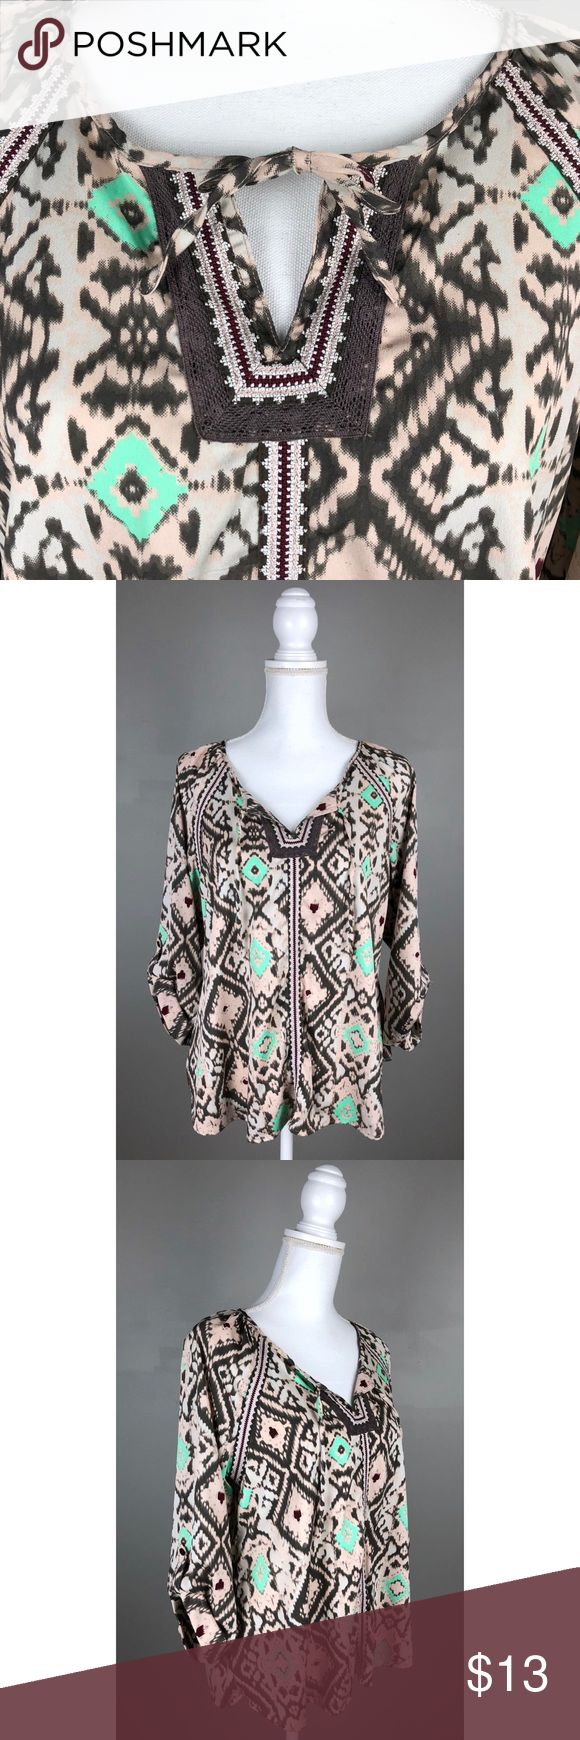 """BKE Boutique Peasant Southwestern 3/4 Sleeve Top IN EXCELLENT- like NEW condition!!  BKE Boutique (Buckle brand). Gray/ taupe, silver, light pink, mint green and burgundy. 3/4 roll-tab sleeves, embroiderydetailing on the front, v-neck with 2 strings that can be tied in a bow or left un-tied. """"Silk"""" like material! Flowy!Picturesare a part of the description.  100% Polyester, Machine wash  {Measurements taken flat without stretching} Armpit to armpit approx. 19-19.5"""" Length approx. 25""""…"""